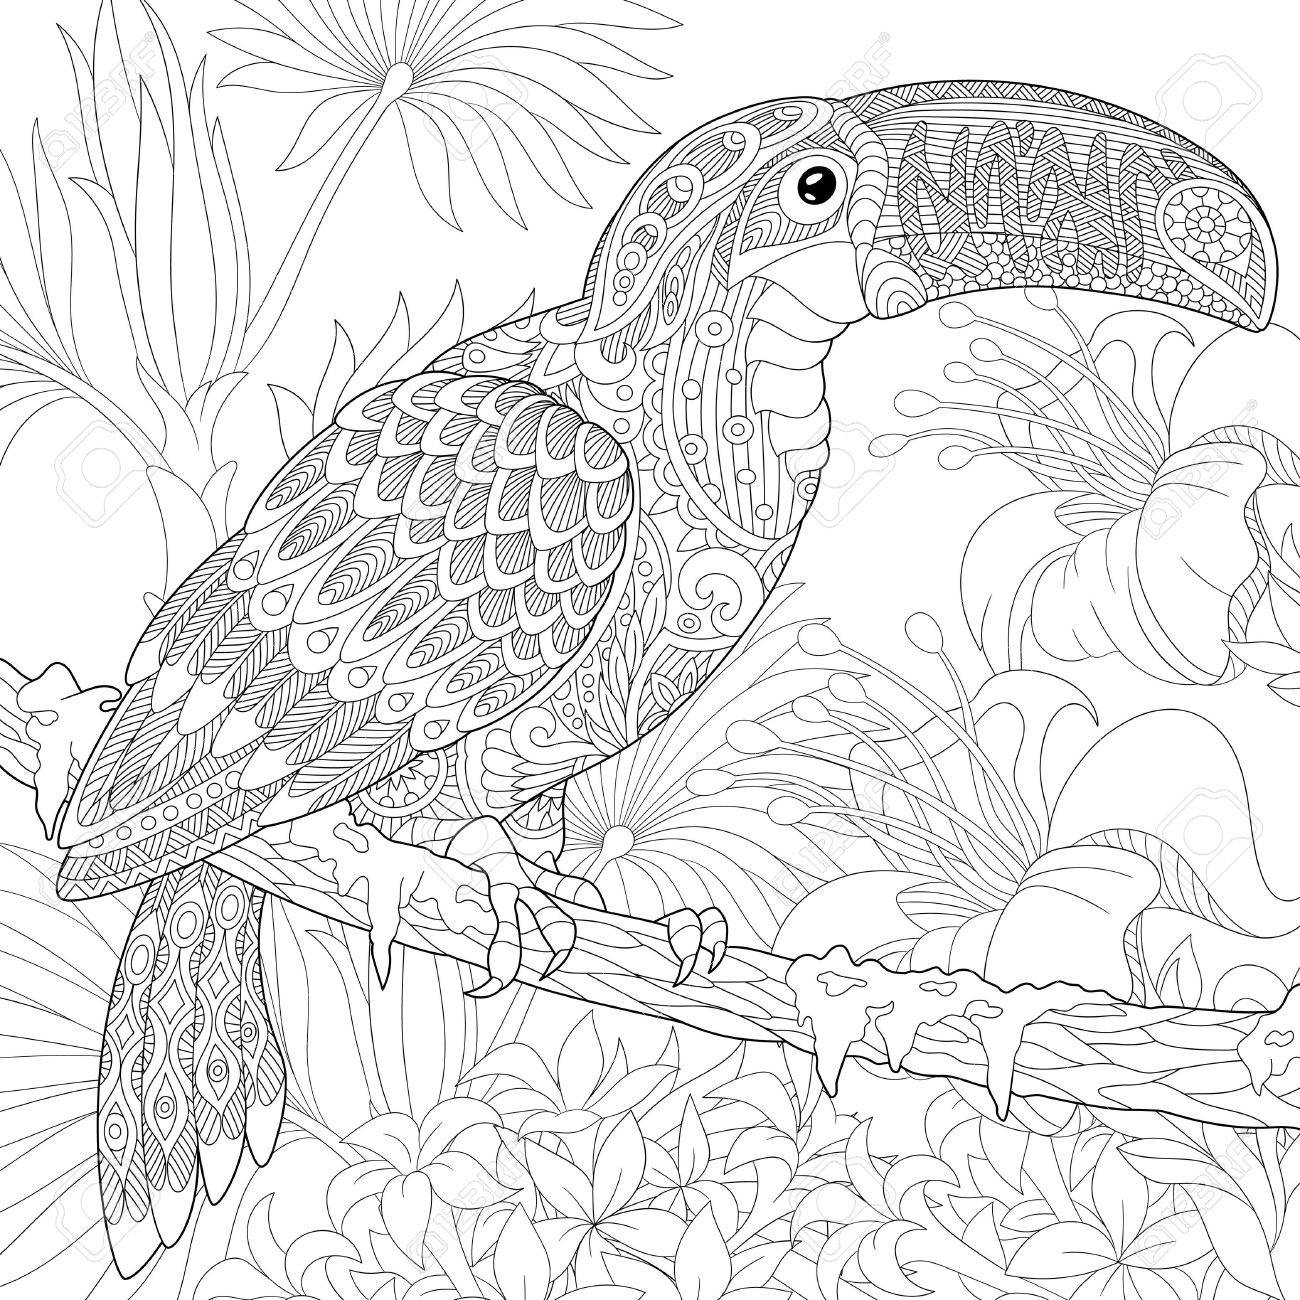 Stylized toucan bird sitting on palm tree branch among hibiscus flowers. Freehand sketch for adult anti stress coloring book page with doodle elements. - 61801586